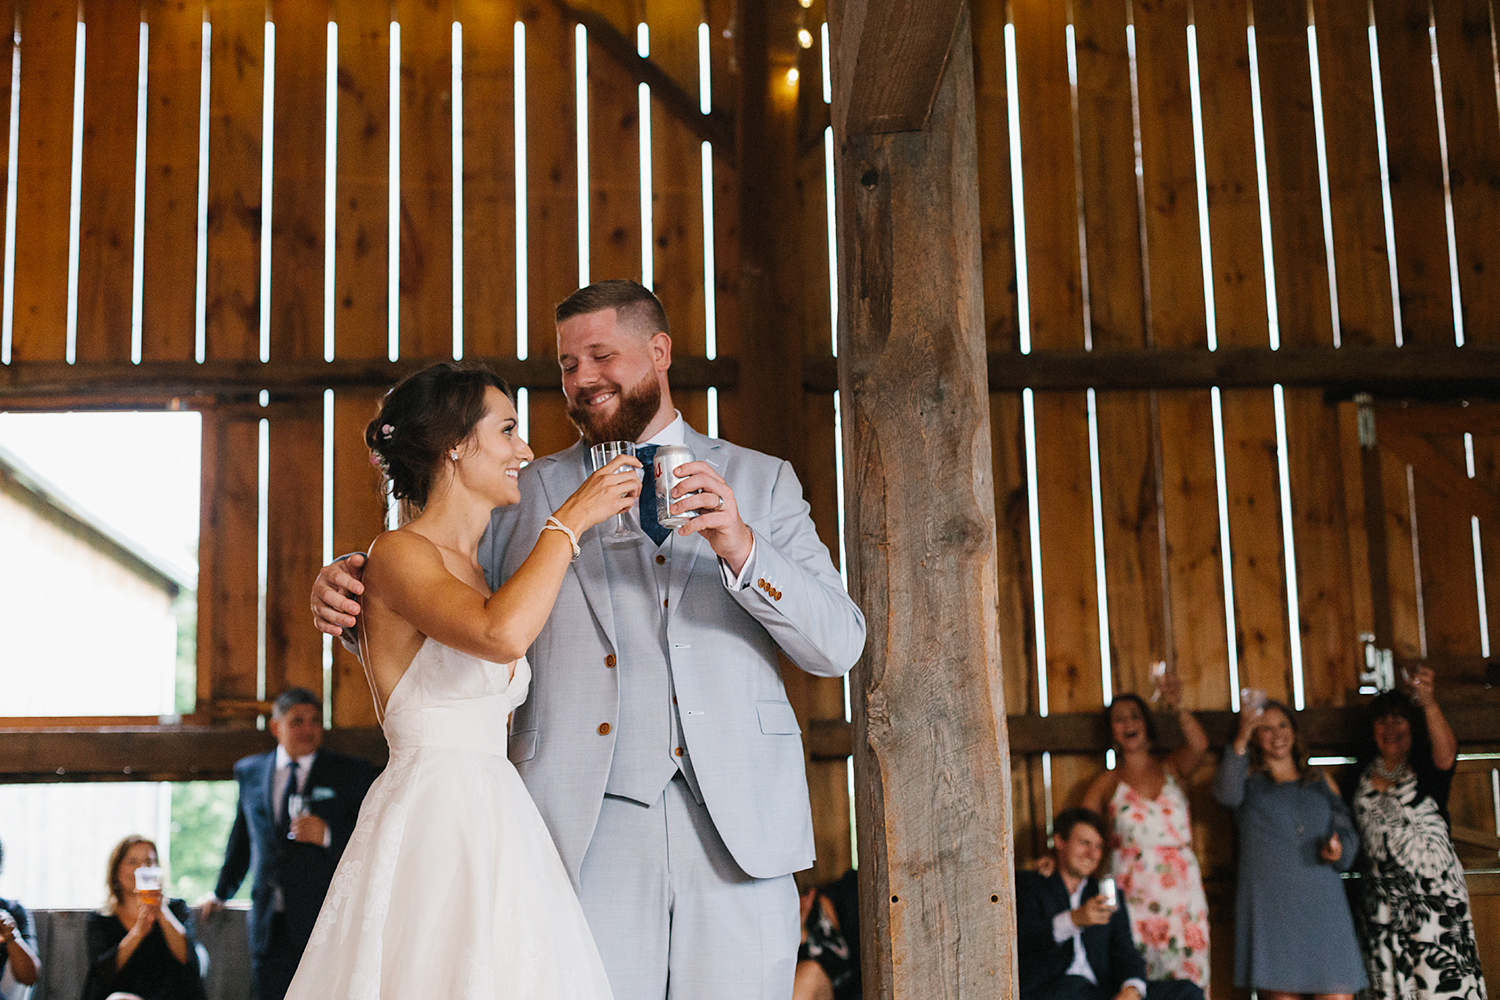 Candid-Toronto-Wedding-Photographers-Photojournalistic-Wedding-Photography-in-Toronto-Ryanne-Hollies-bradford-barn-farm-wedding-venue-inspiration-cinematic-reception-speeches-bride-and-groom-cheers-toast.jpg